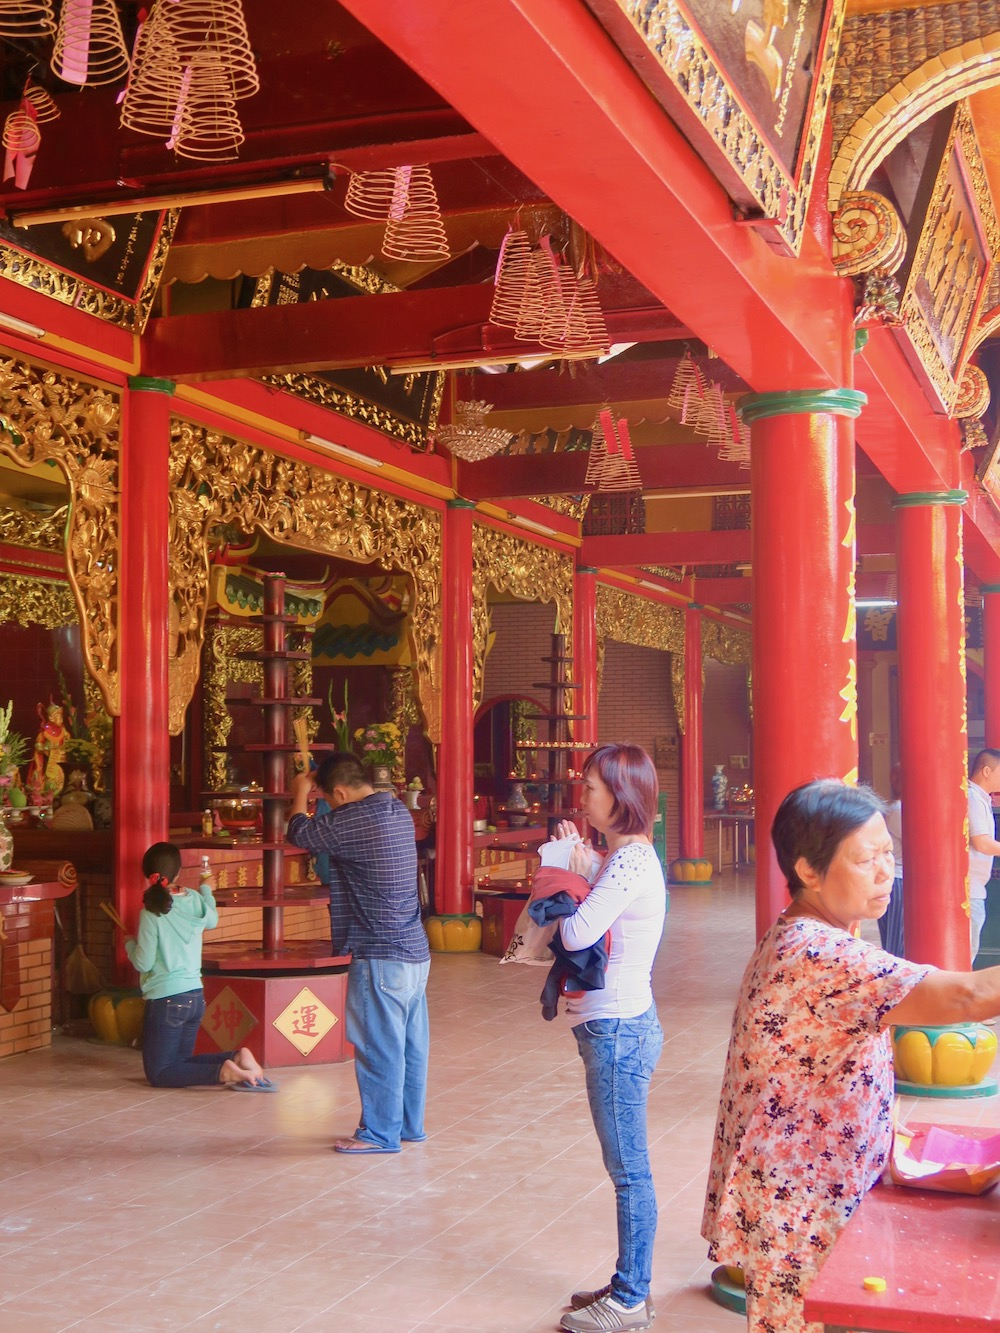 People pray in temple in Cholon Saigon |curlytraveller.com